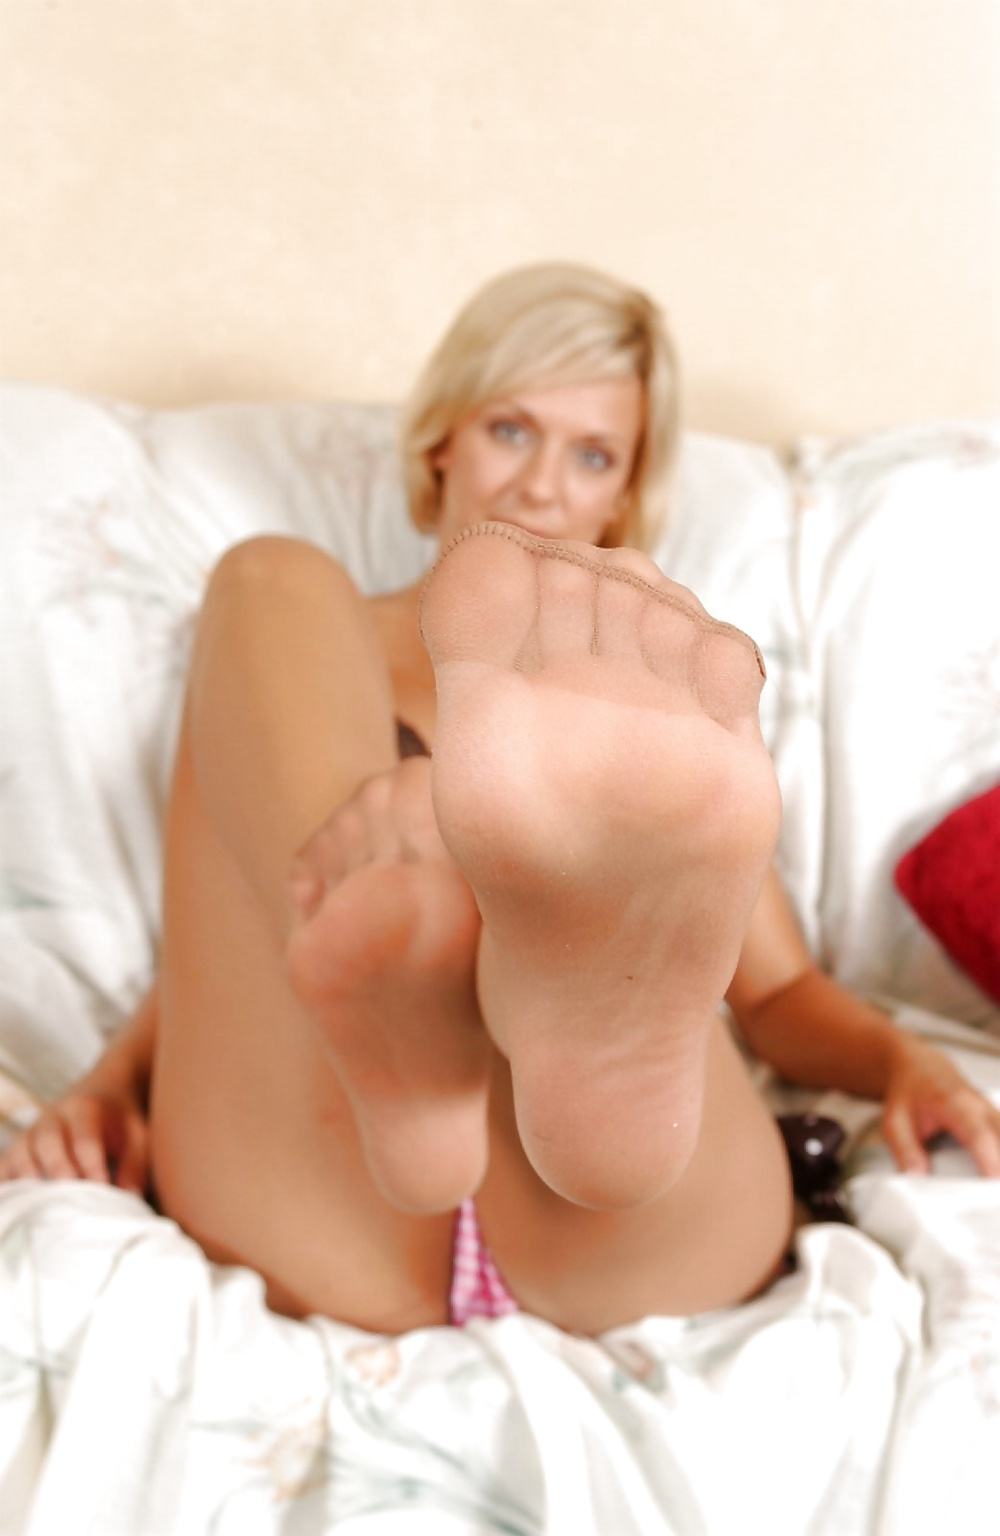 Smelling stocking feet